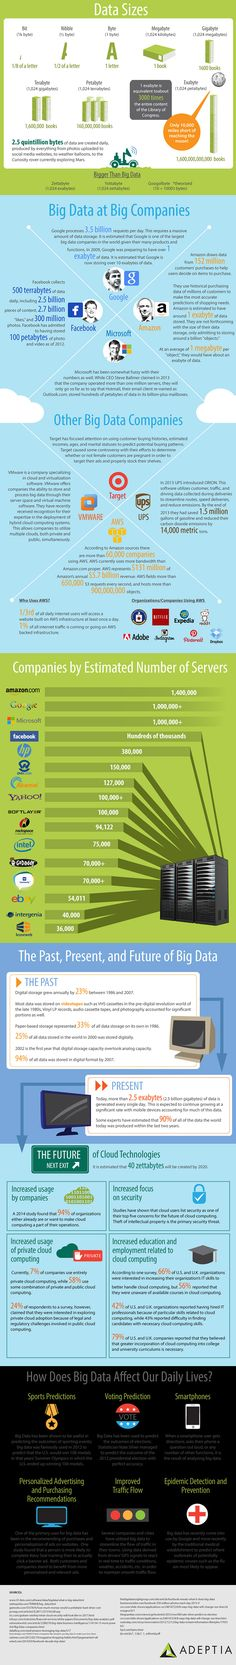 INFOGRAPHIC: The surprising things you don't know about Big Data | http://data.li/1GKtbKm